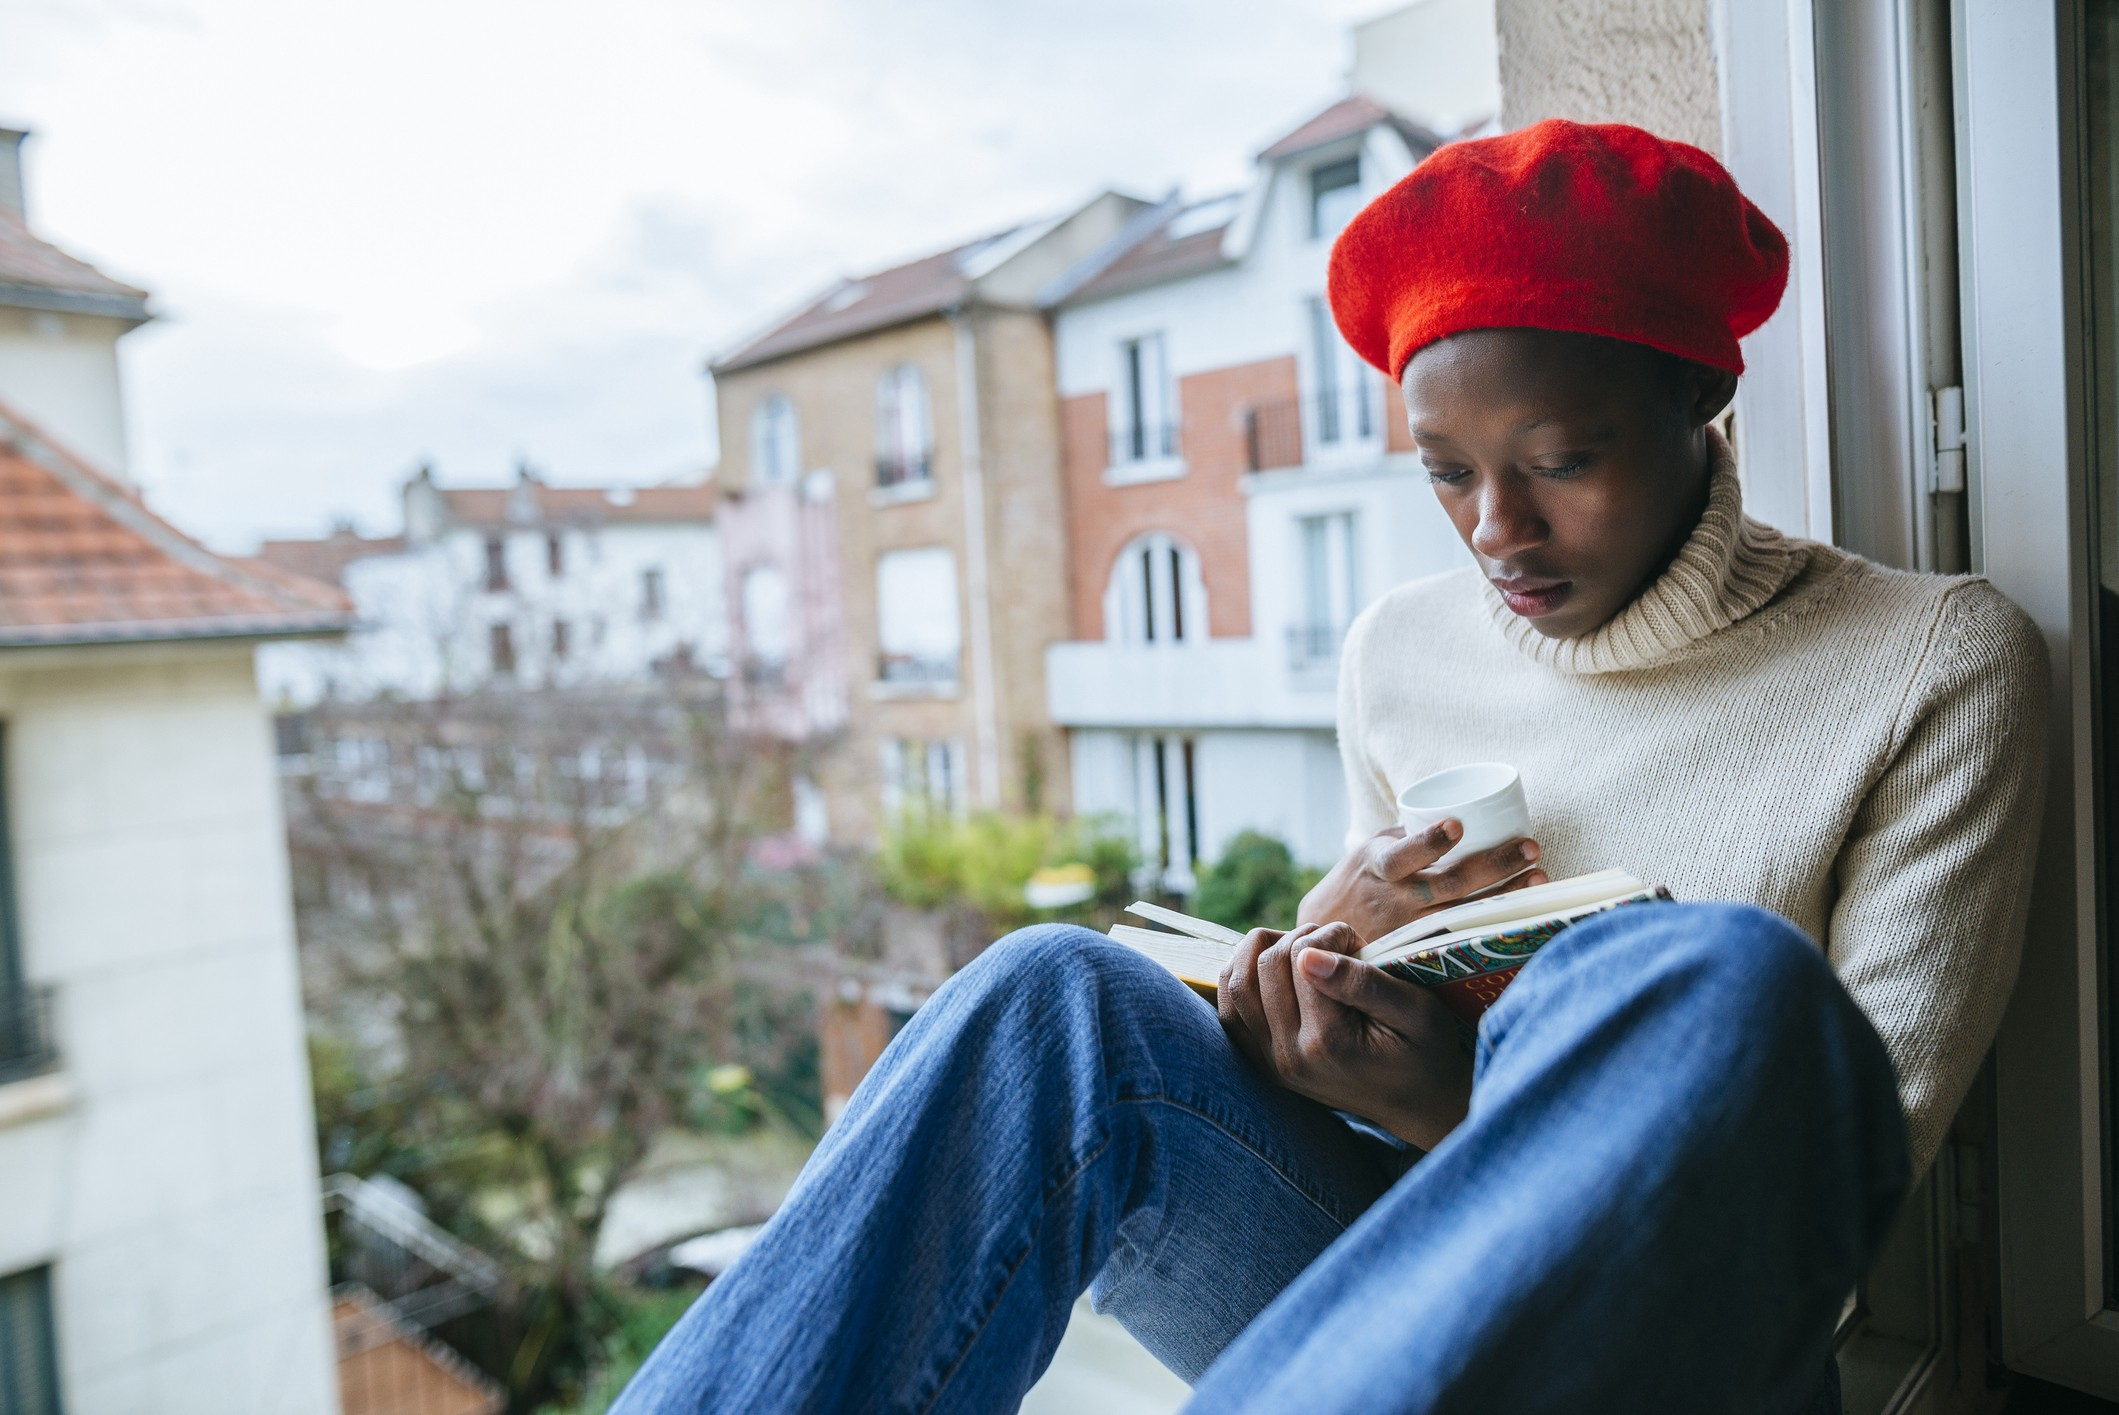 A photo of a young black woman reading by her window.